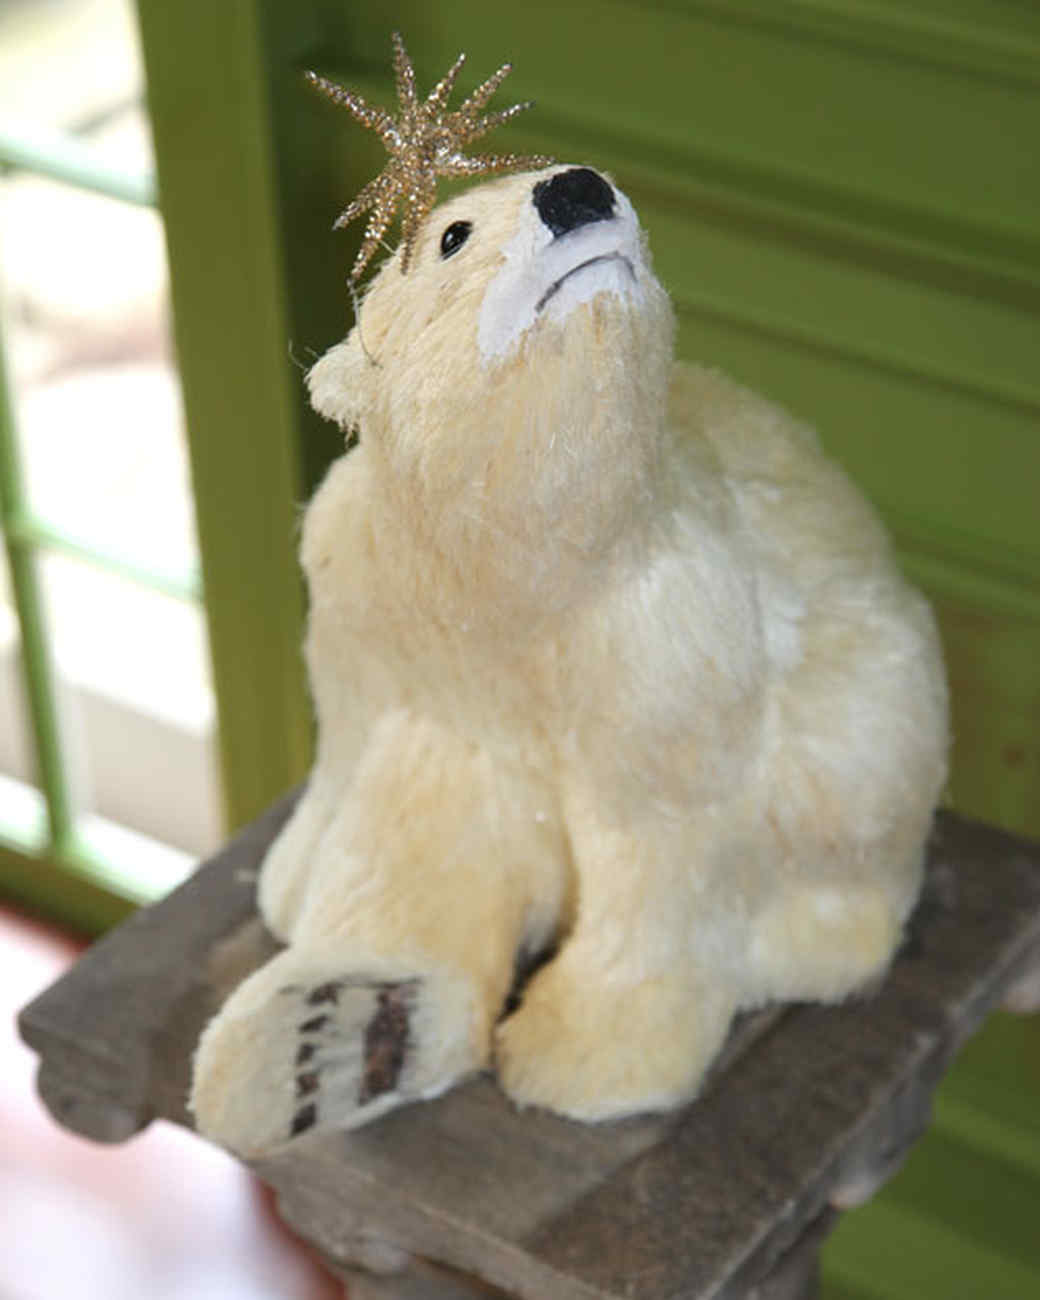 marthas holiday decorating ideas martha stewart - Bear Christmas Decorations